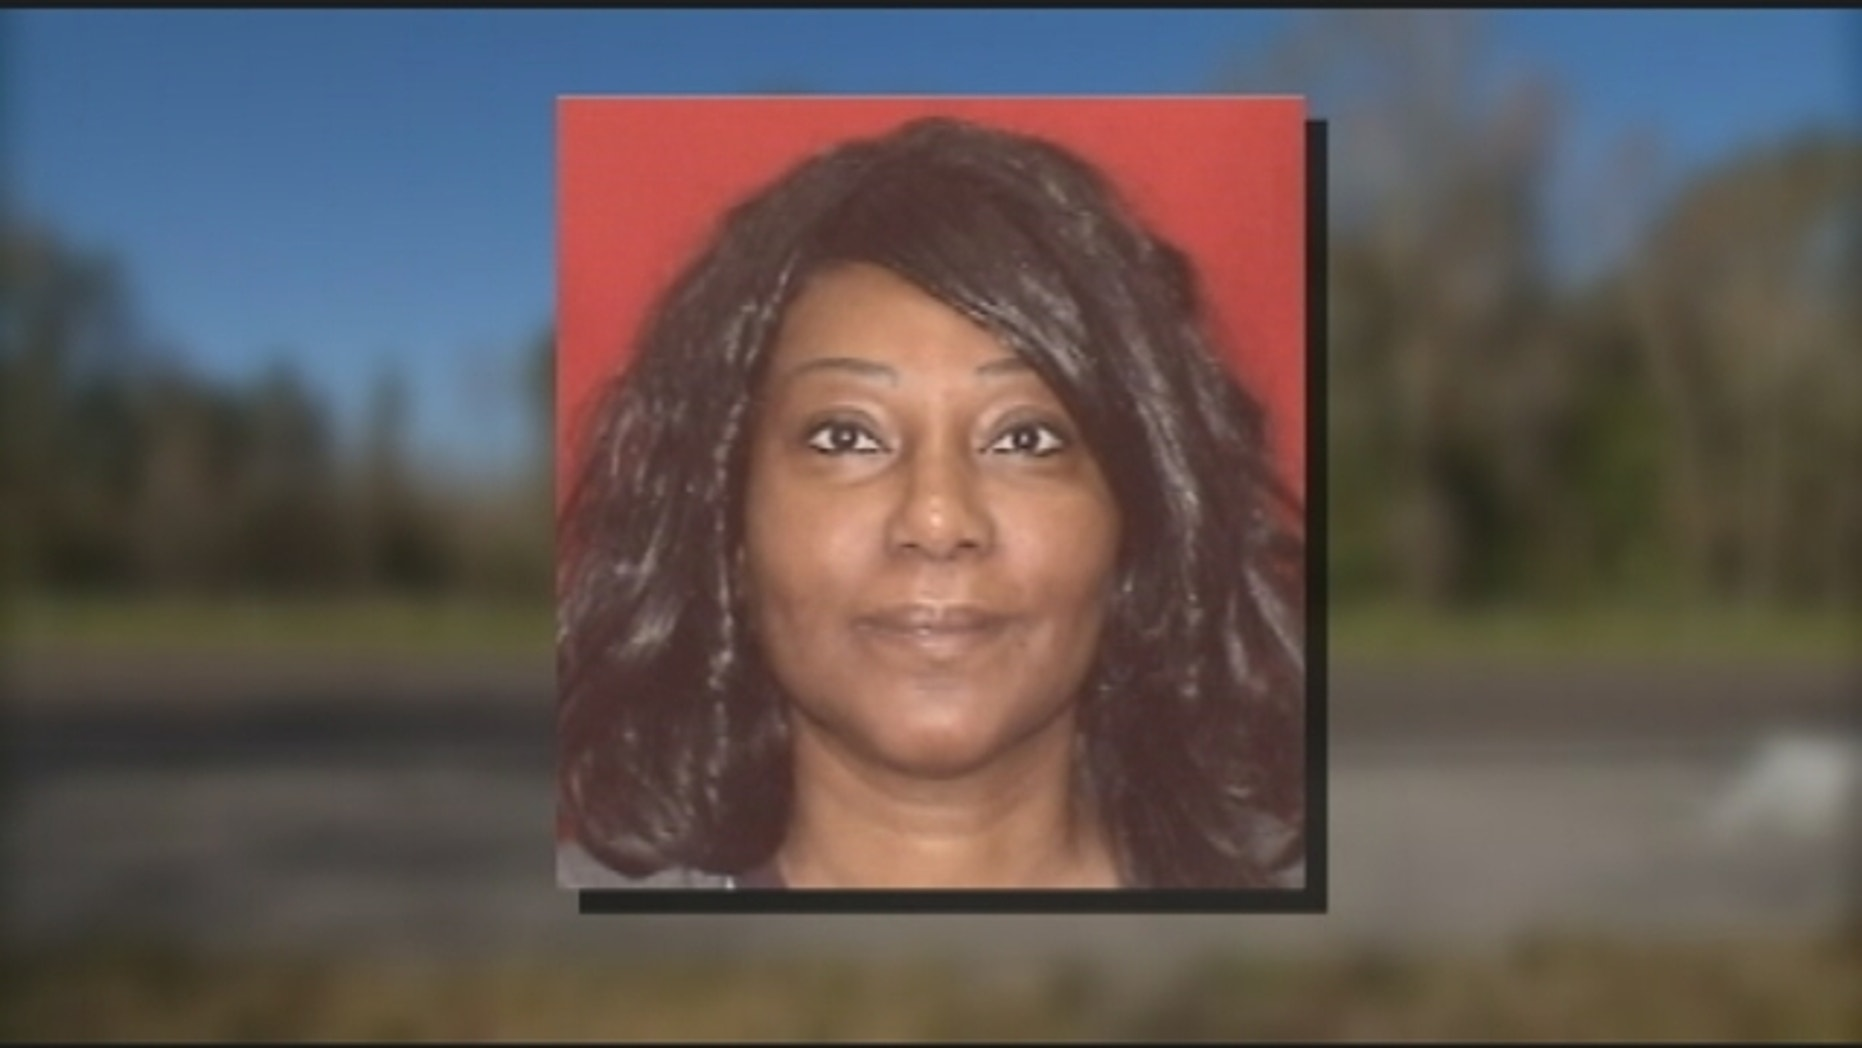 Dana Nelson, 47, was killed when she was struck by a car while she assisted a stranded motorist.